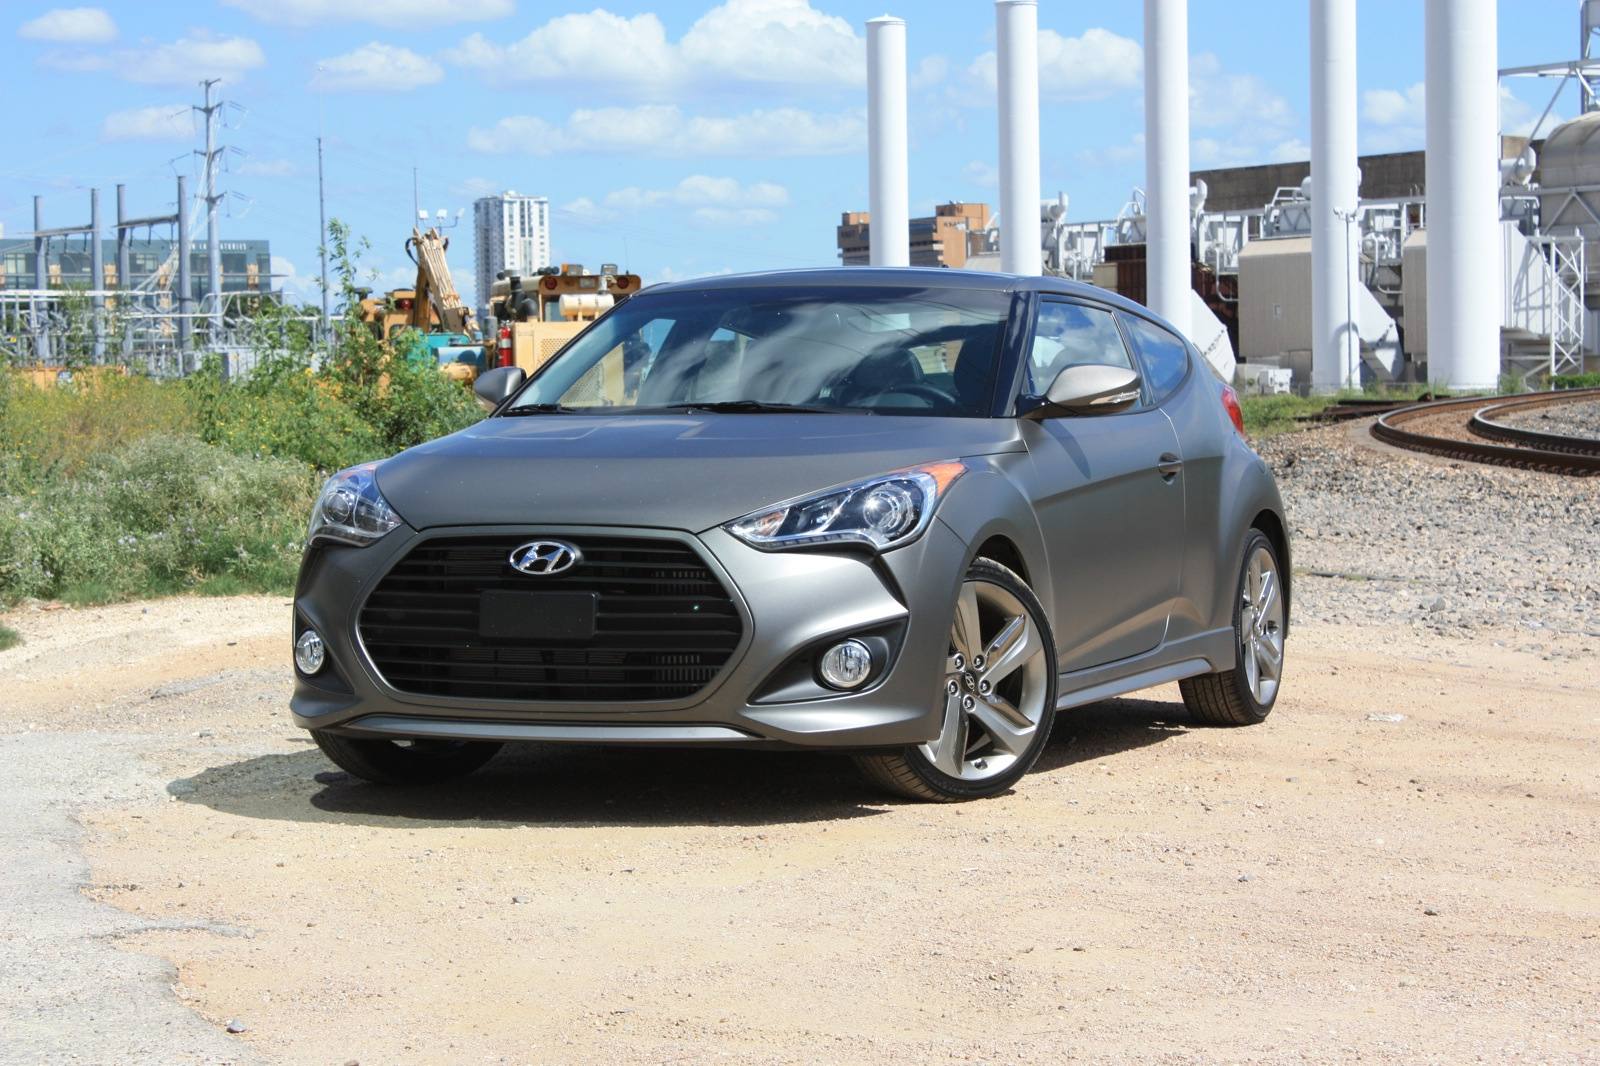 Hyundai, Kia To Pay $300 Million For Gas-Mileage Testing Errors